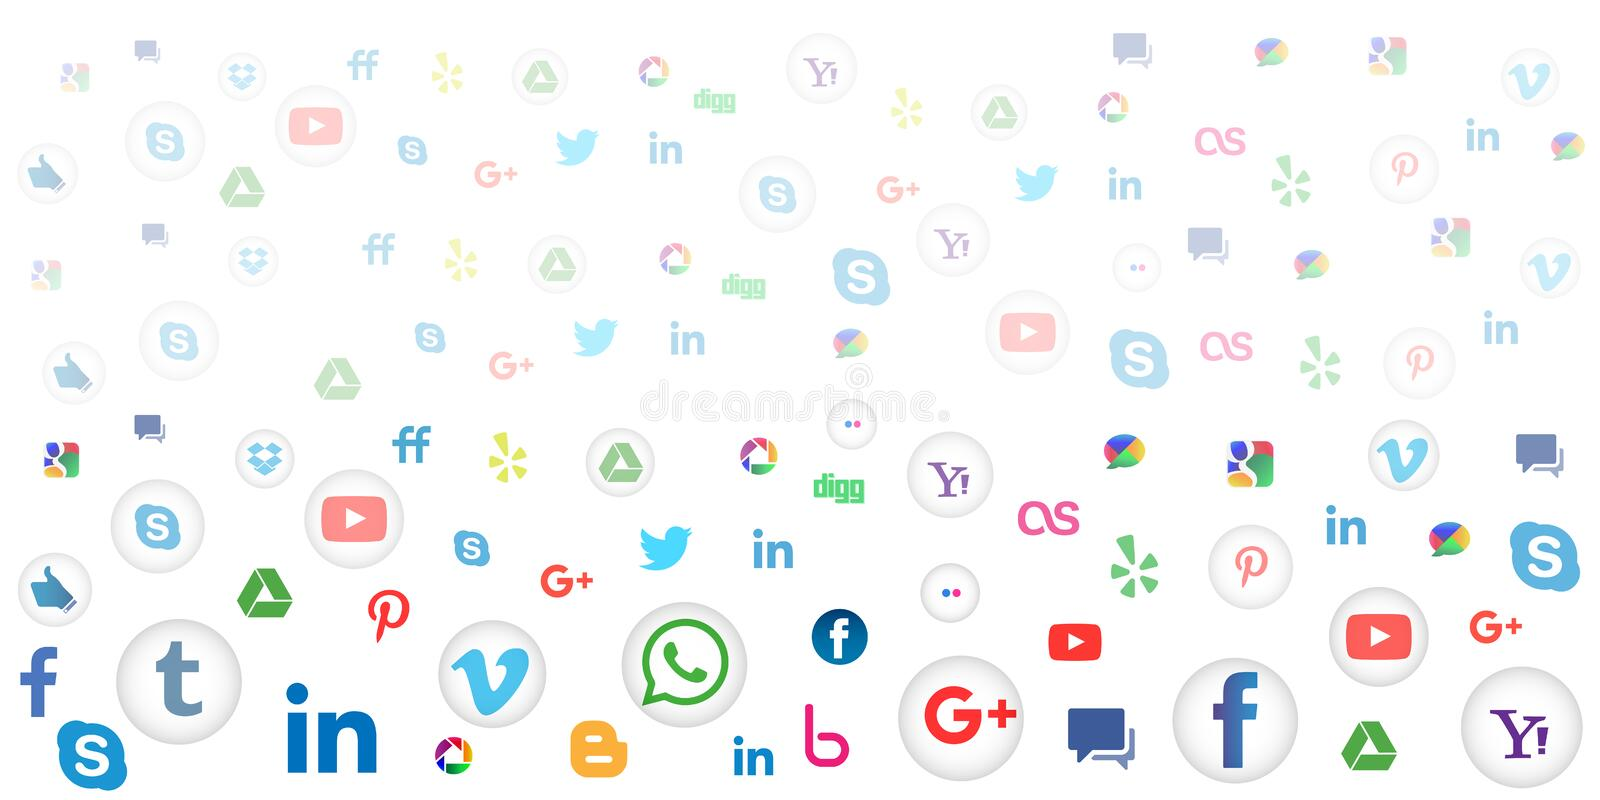 Social media icon background for wallpaper on white background. Social media background of the icons vector. Ai10 file version. This illustration contains stock illustration